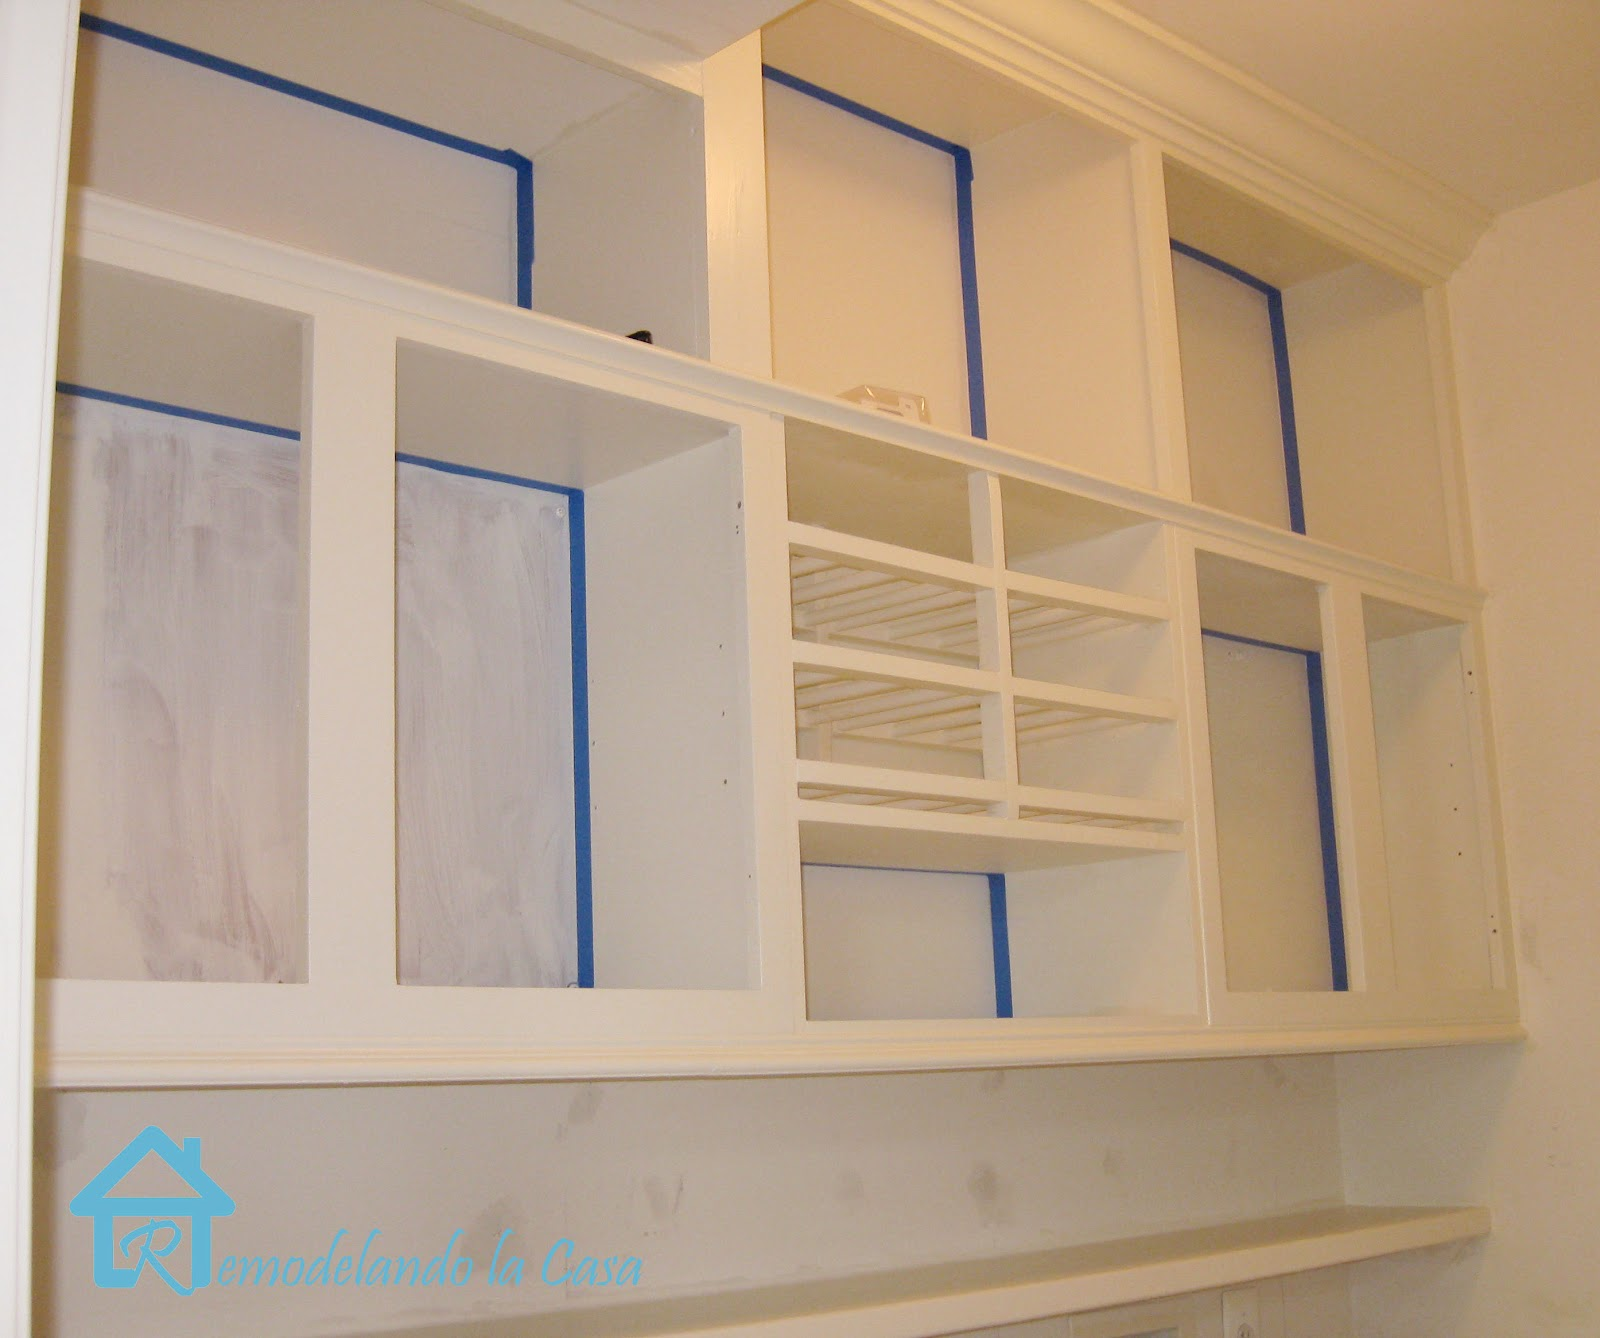 How To Make A Kitchen Cabinet: Building The Cabinets Up To The Ceiling